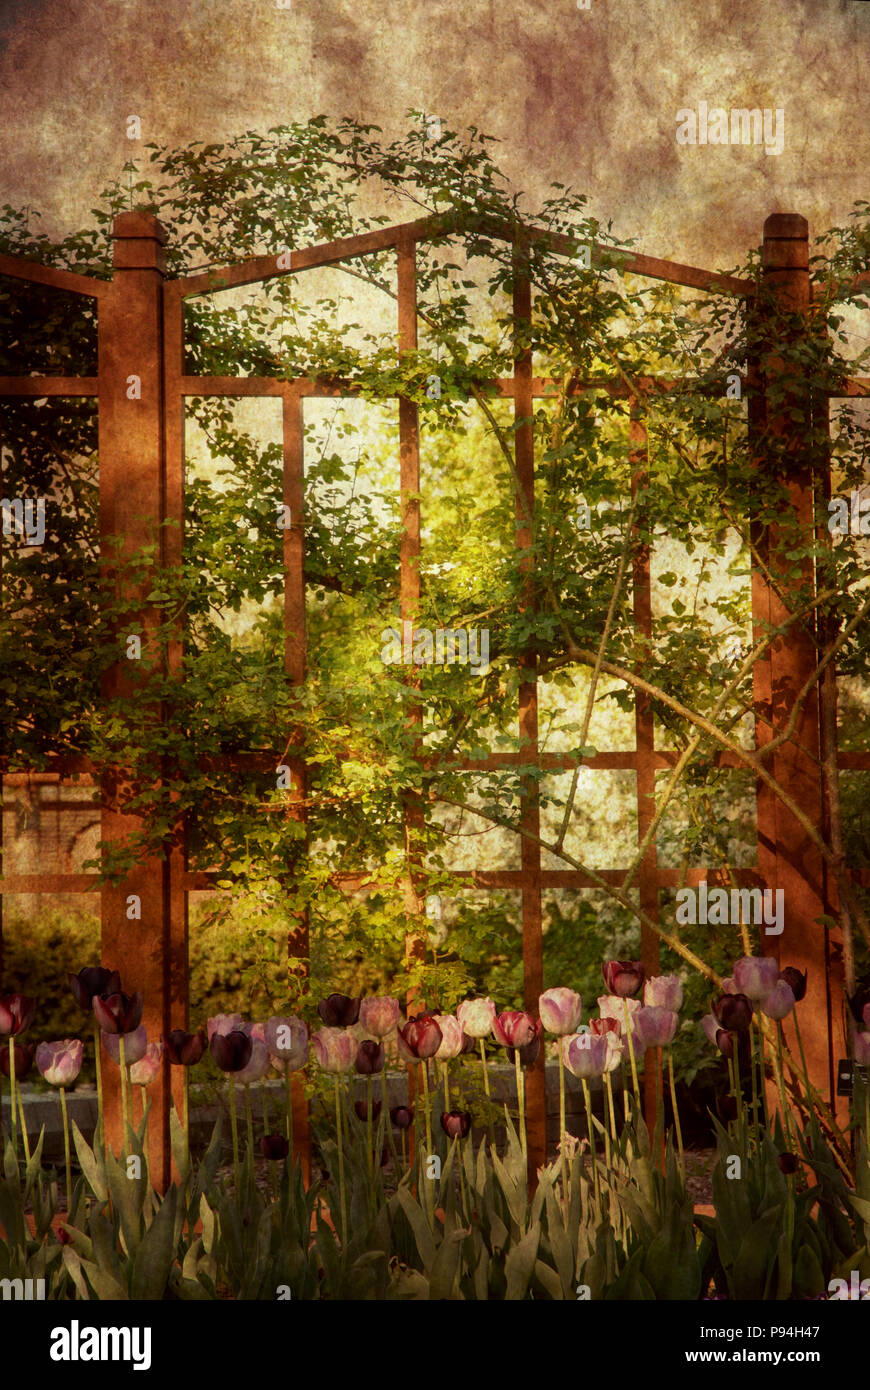 Victorian Style Or Vintage, Romantic Outdoor Garden Backdrop Or Background  Scene With Wooden Fence, Vines And Tulips.